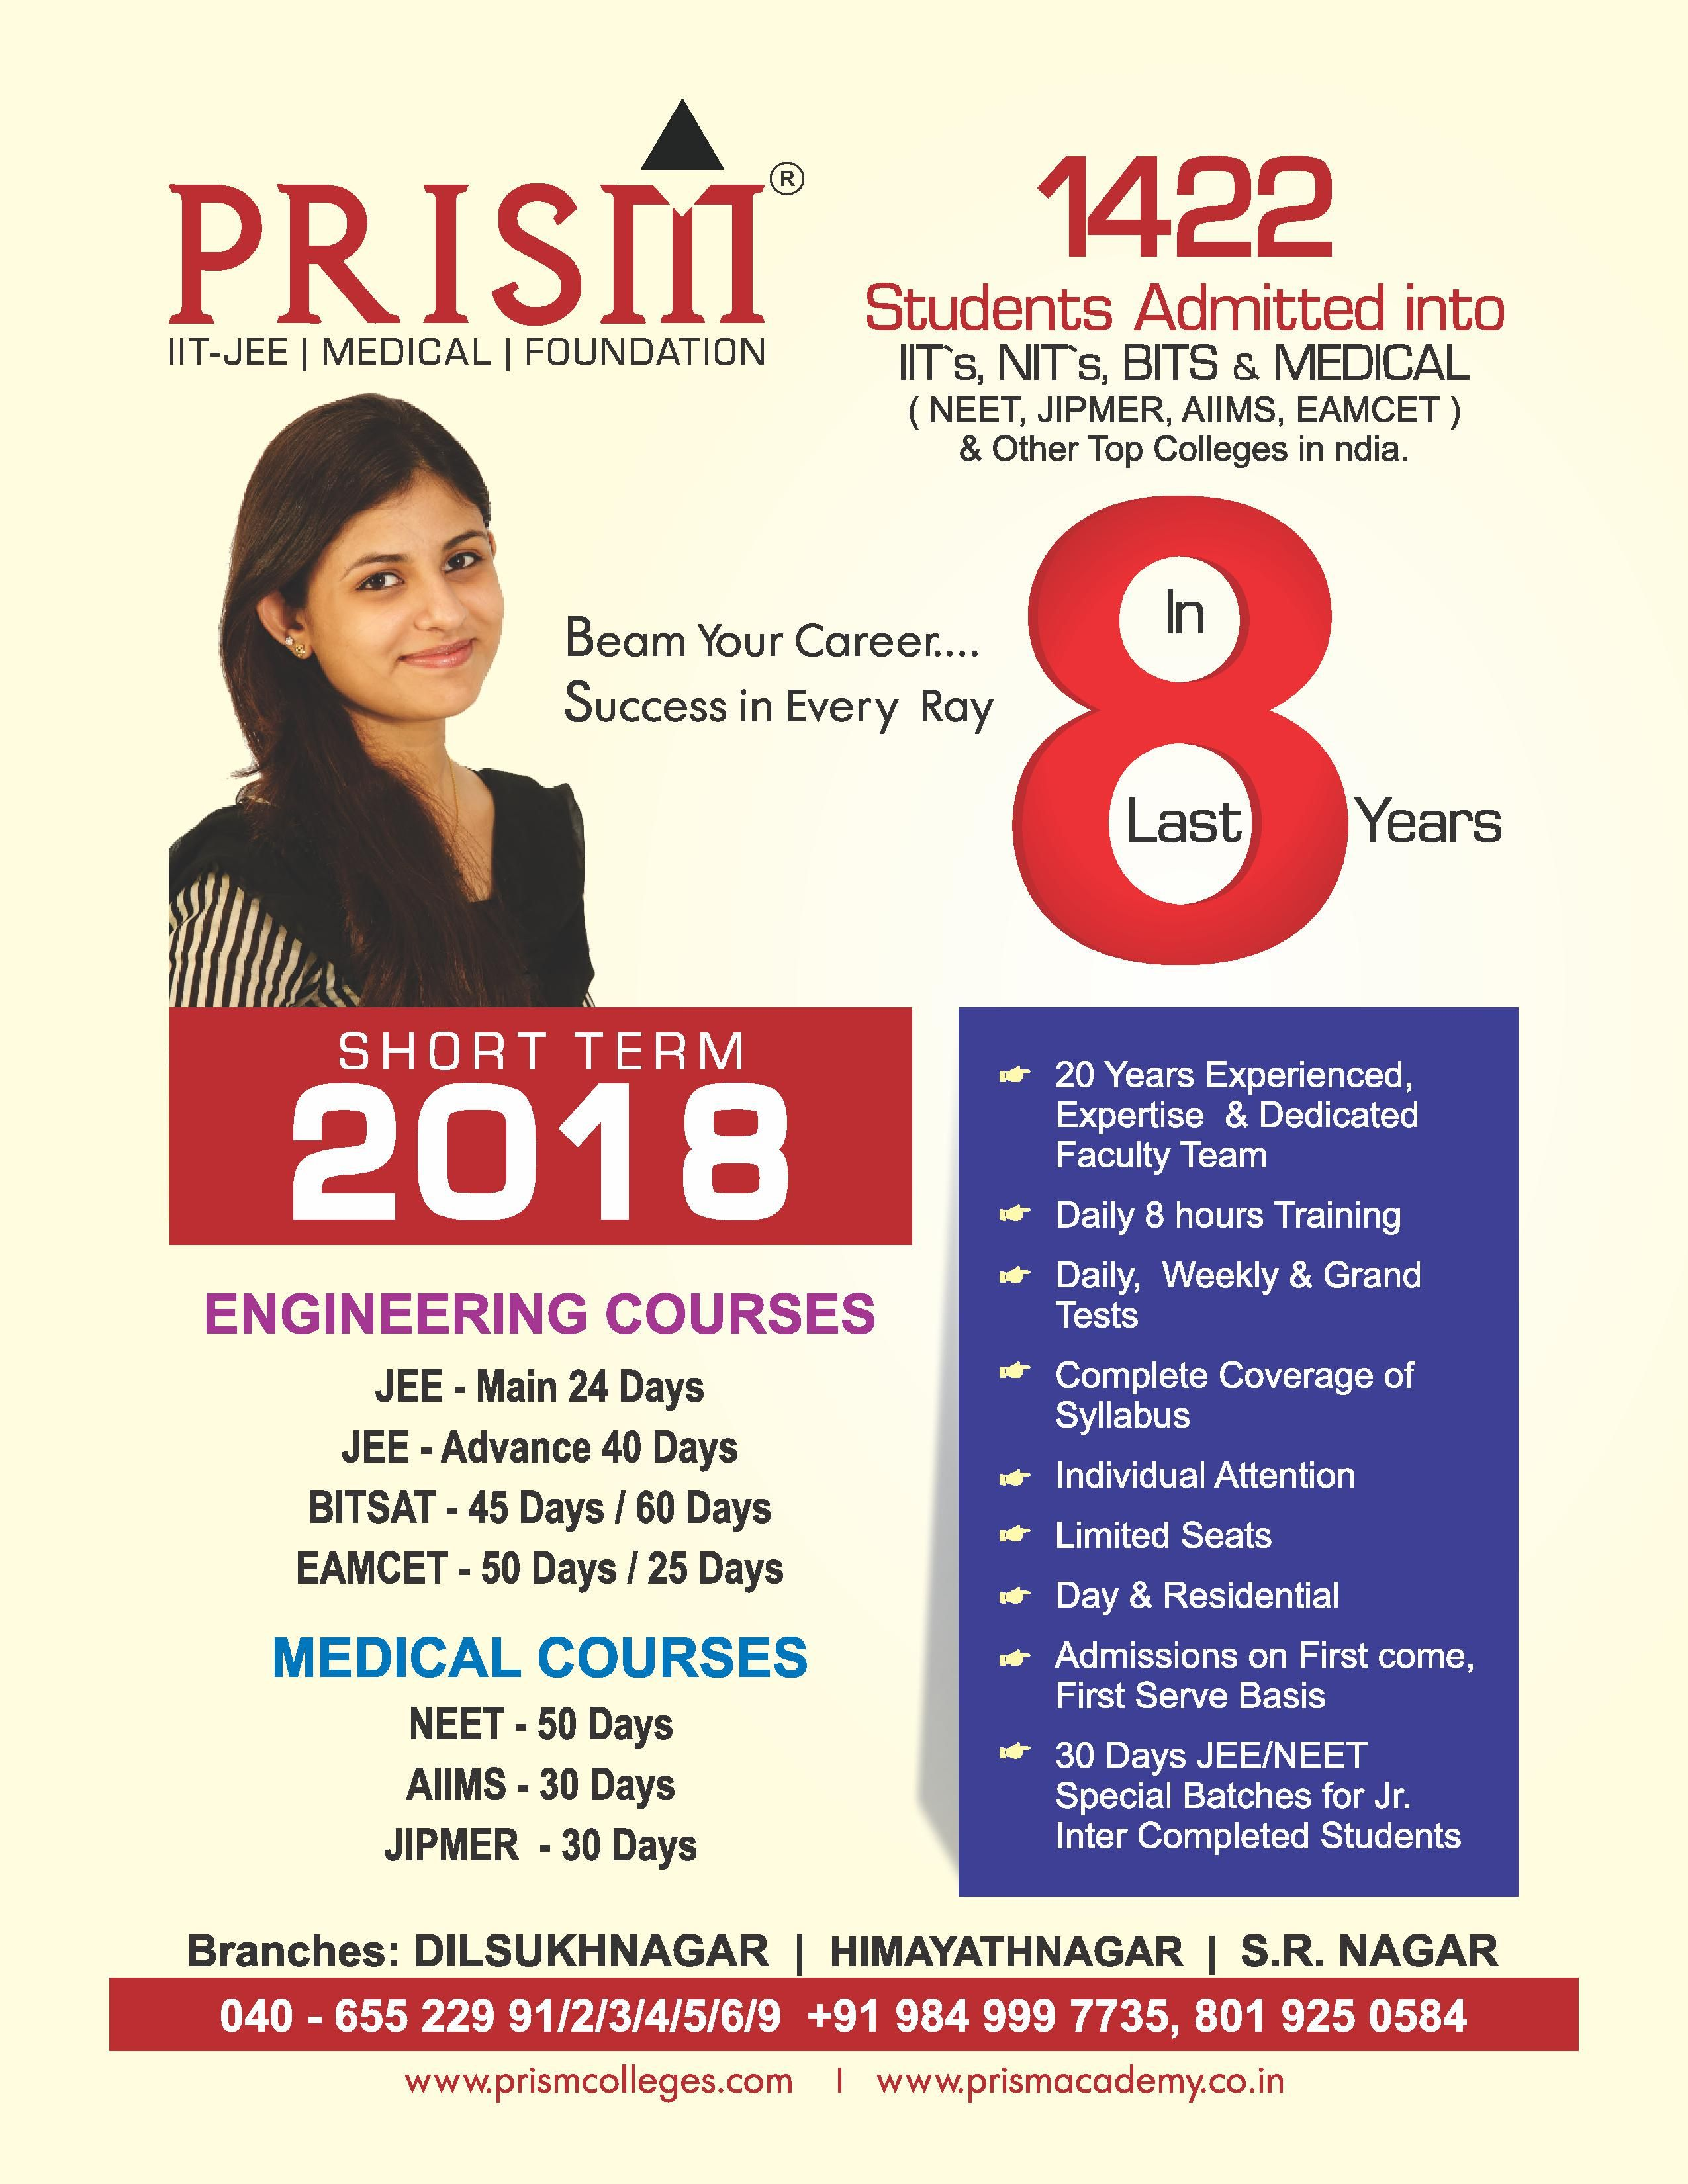 Are You Looking For The Best Neet Iit Jee Main Advanced Coaching Centres In Hyderabad Join Prism Academy Prism Academy Coaching Top Colleges Student